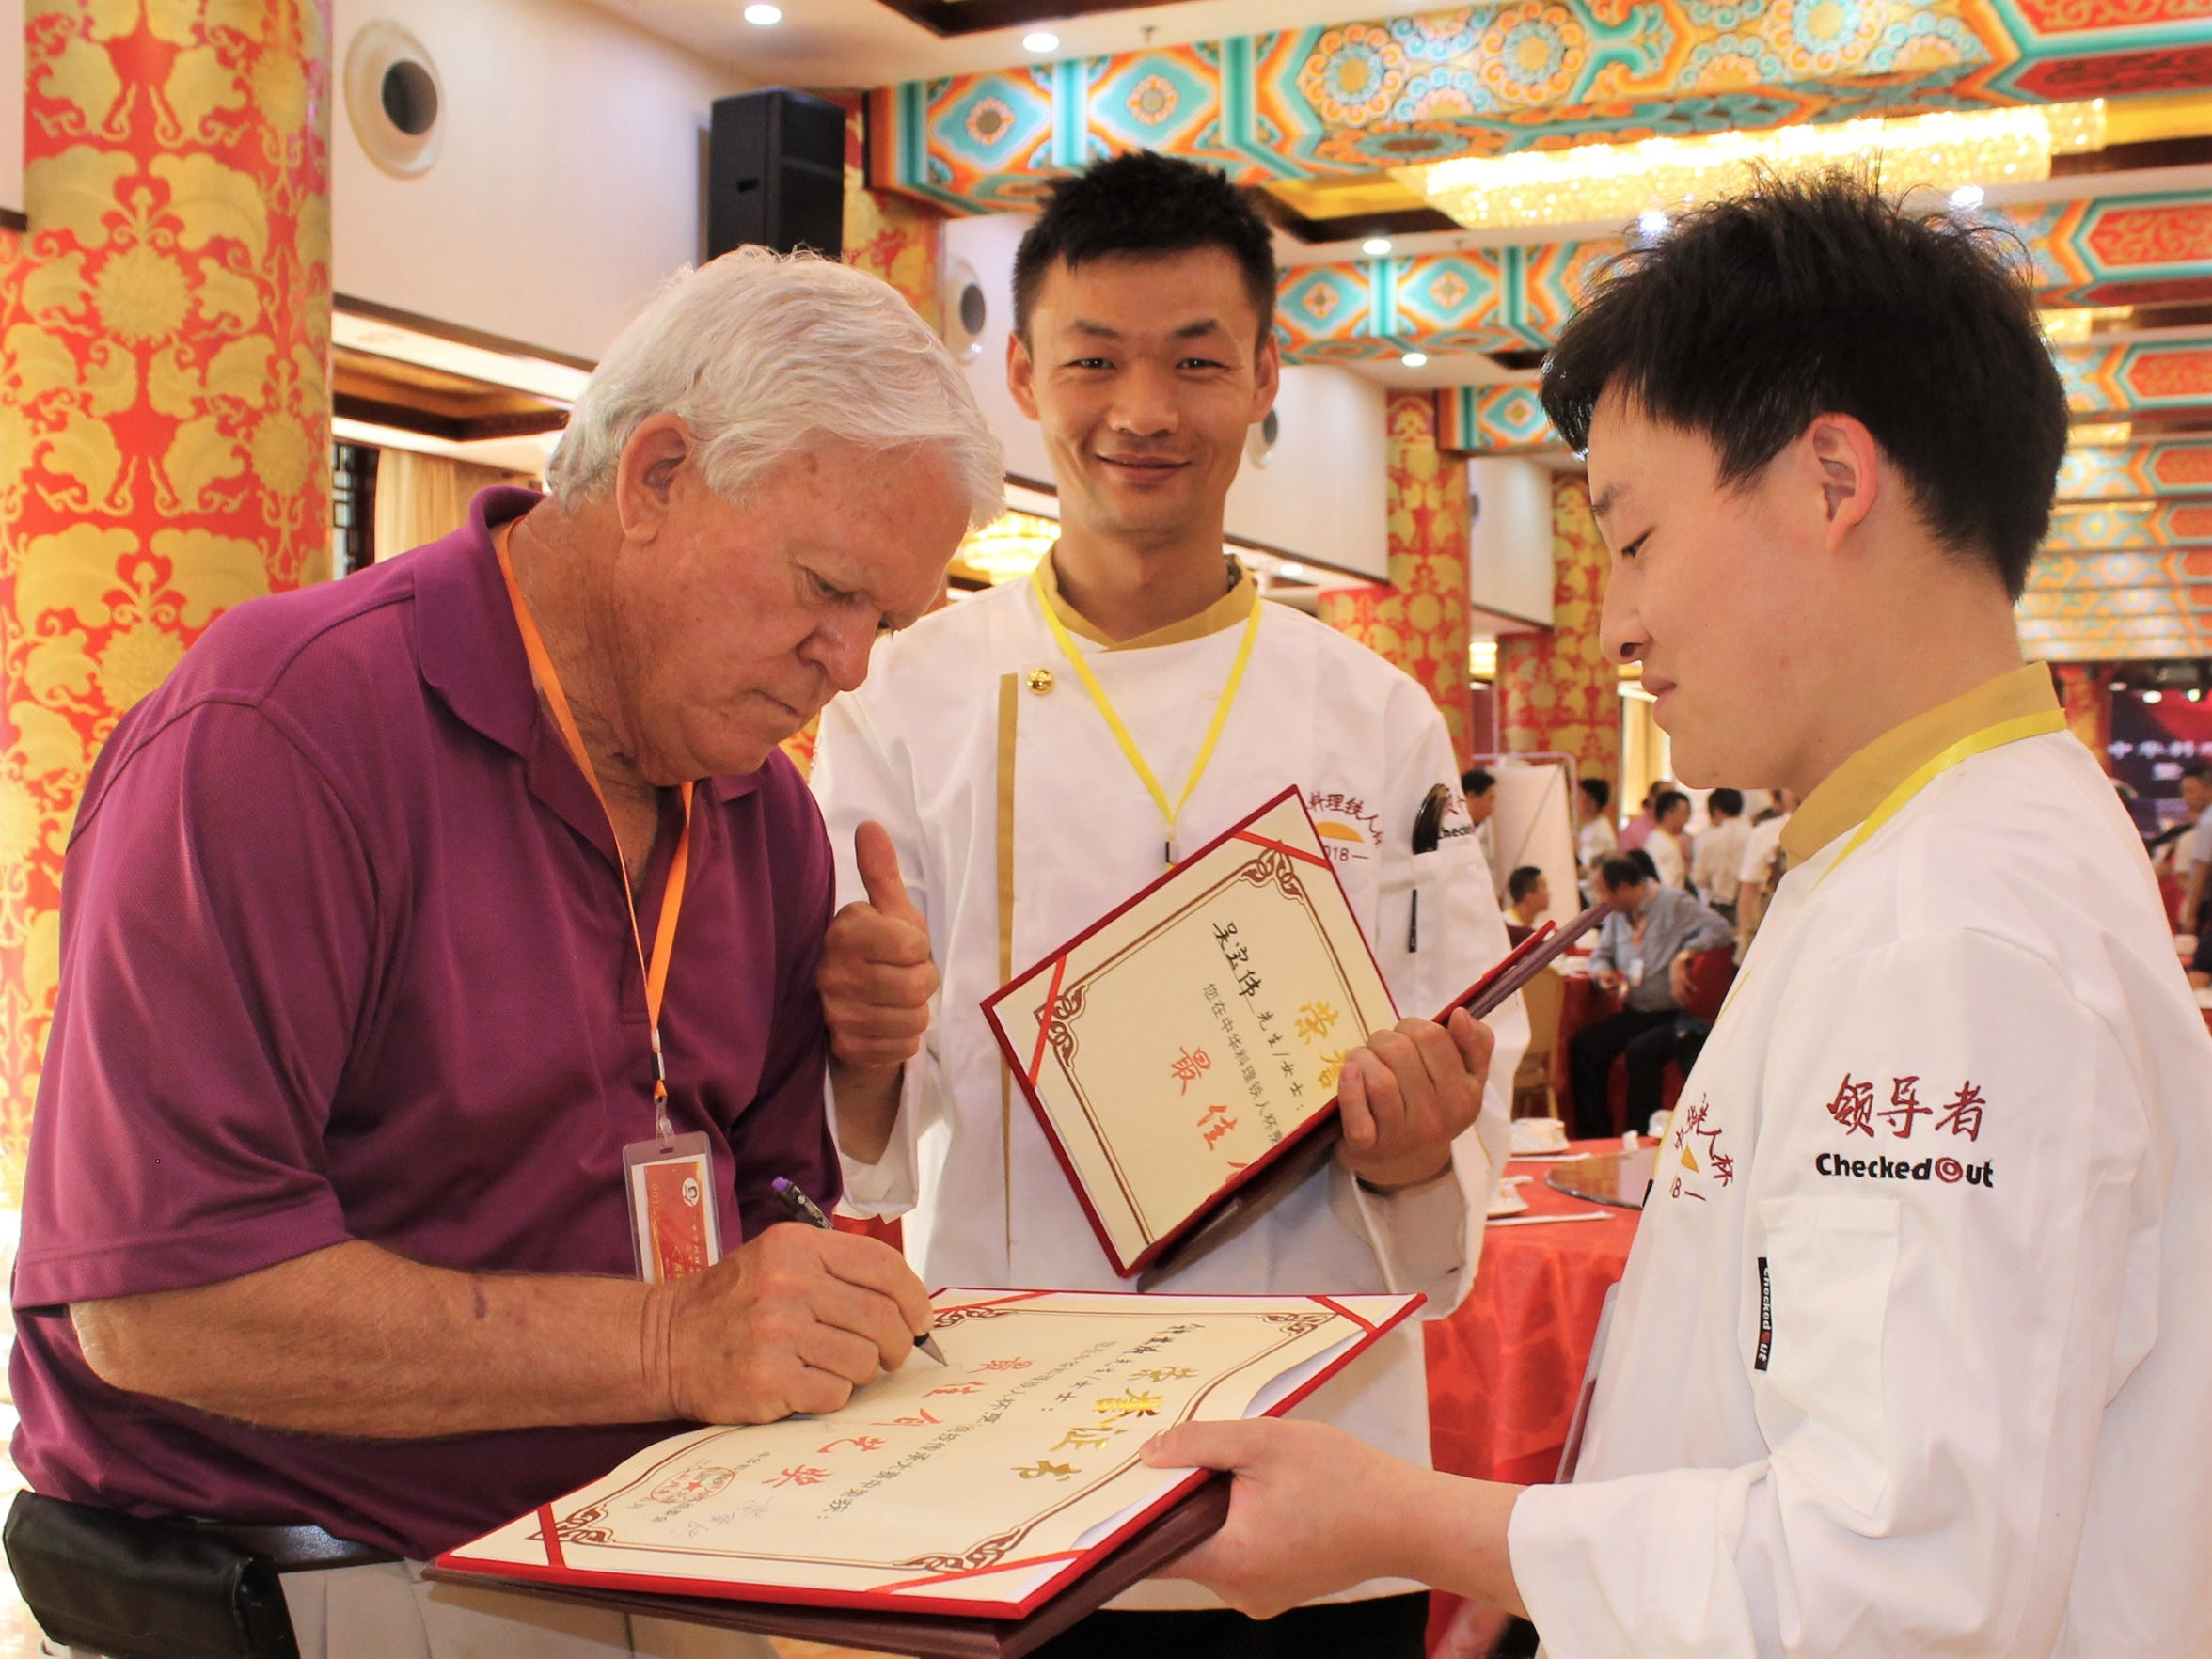 Melvin Martin autographs diplomas of graduating chefs. Martin and his wife, MaryAnn, were considered celebrities during their visit to China in May.